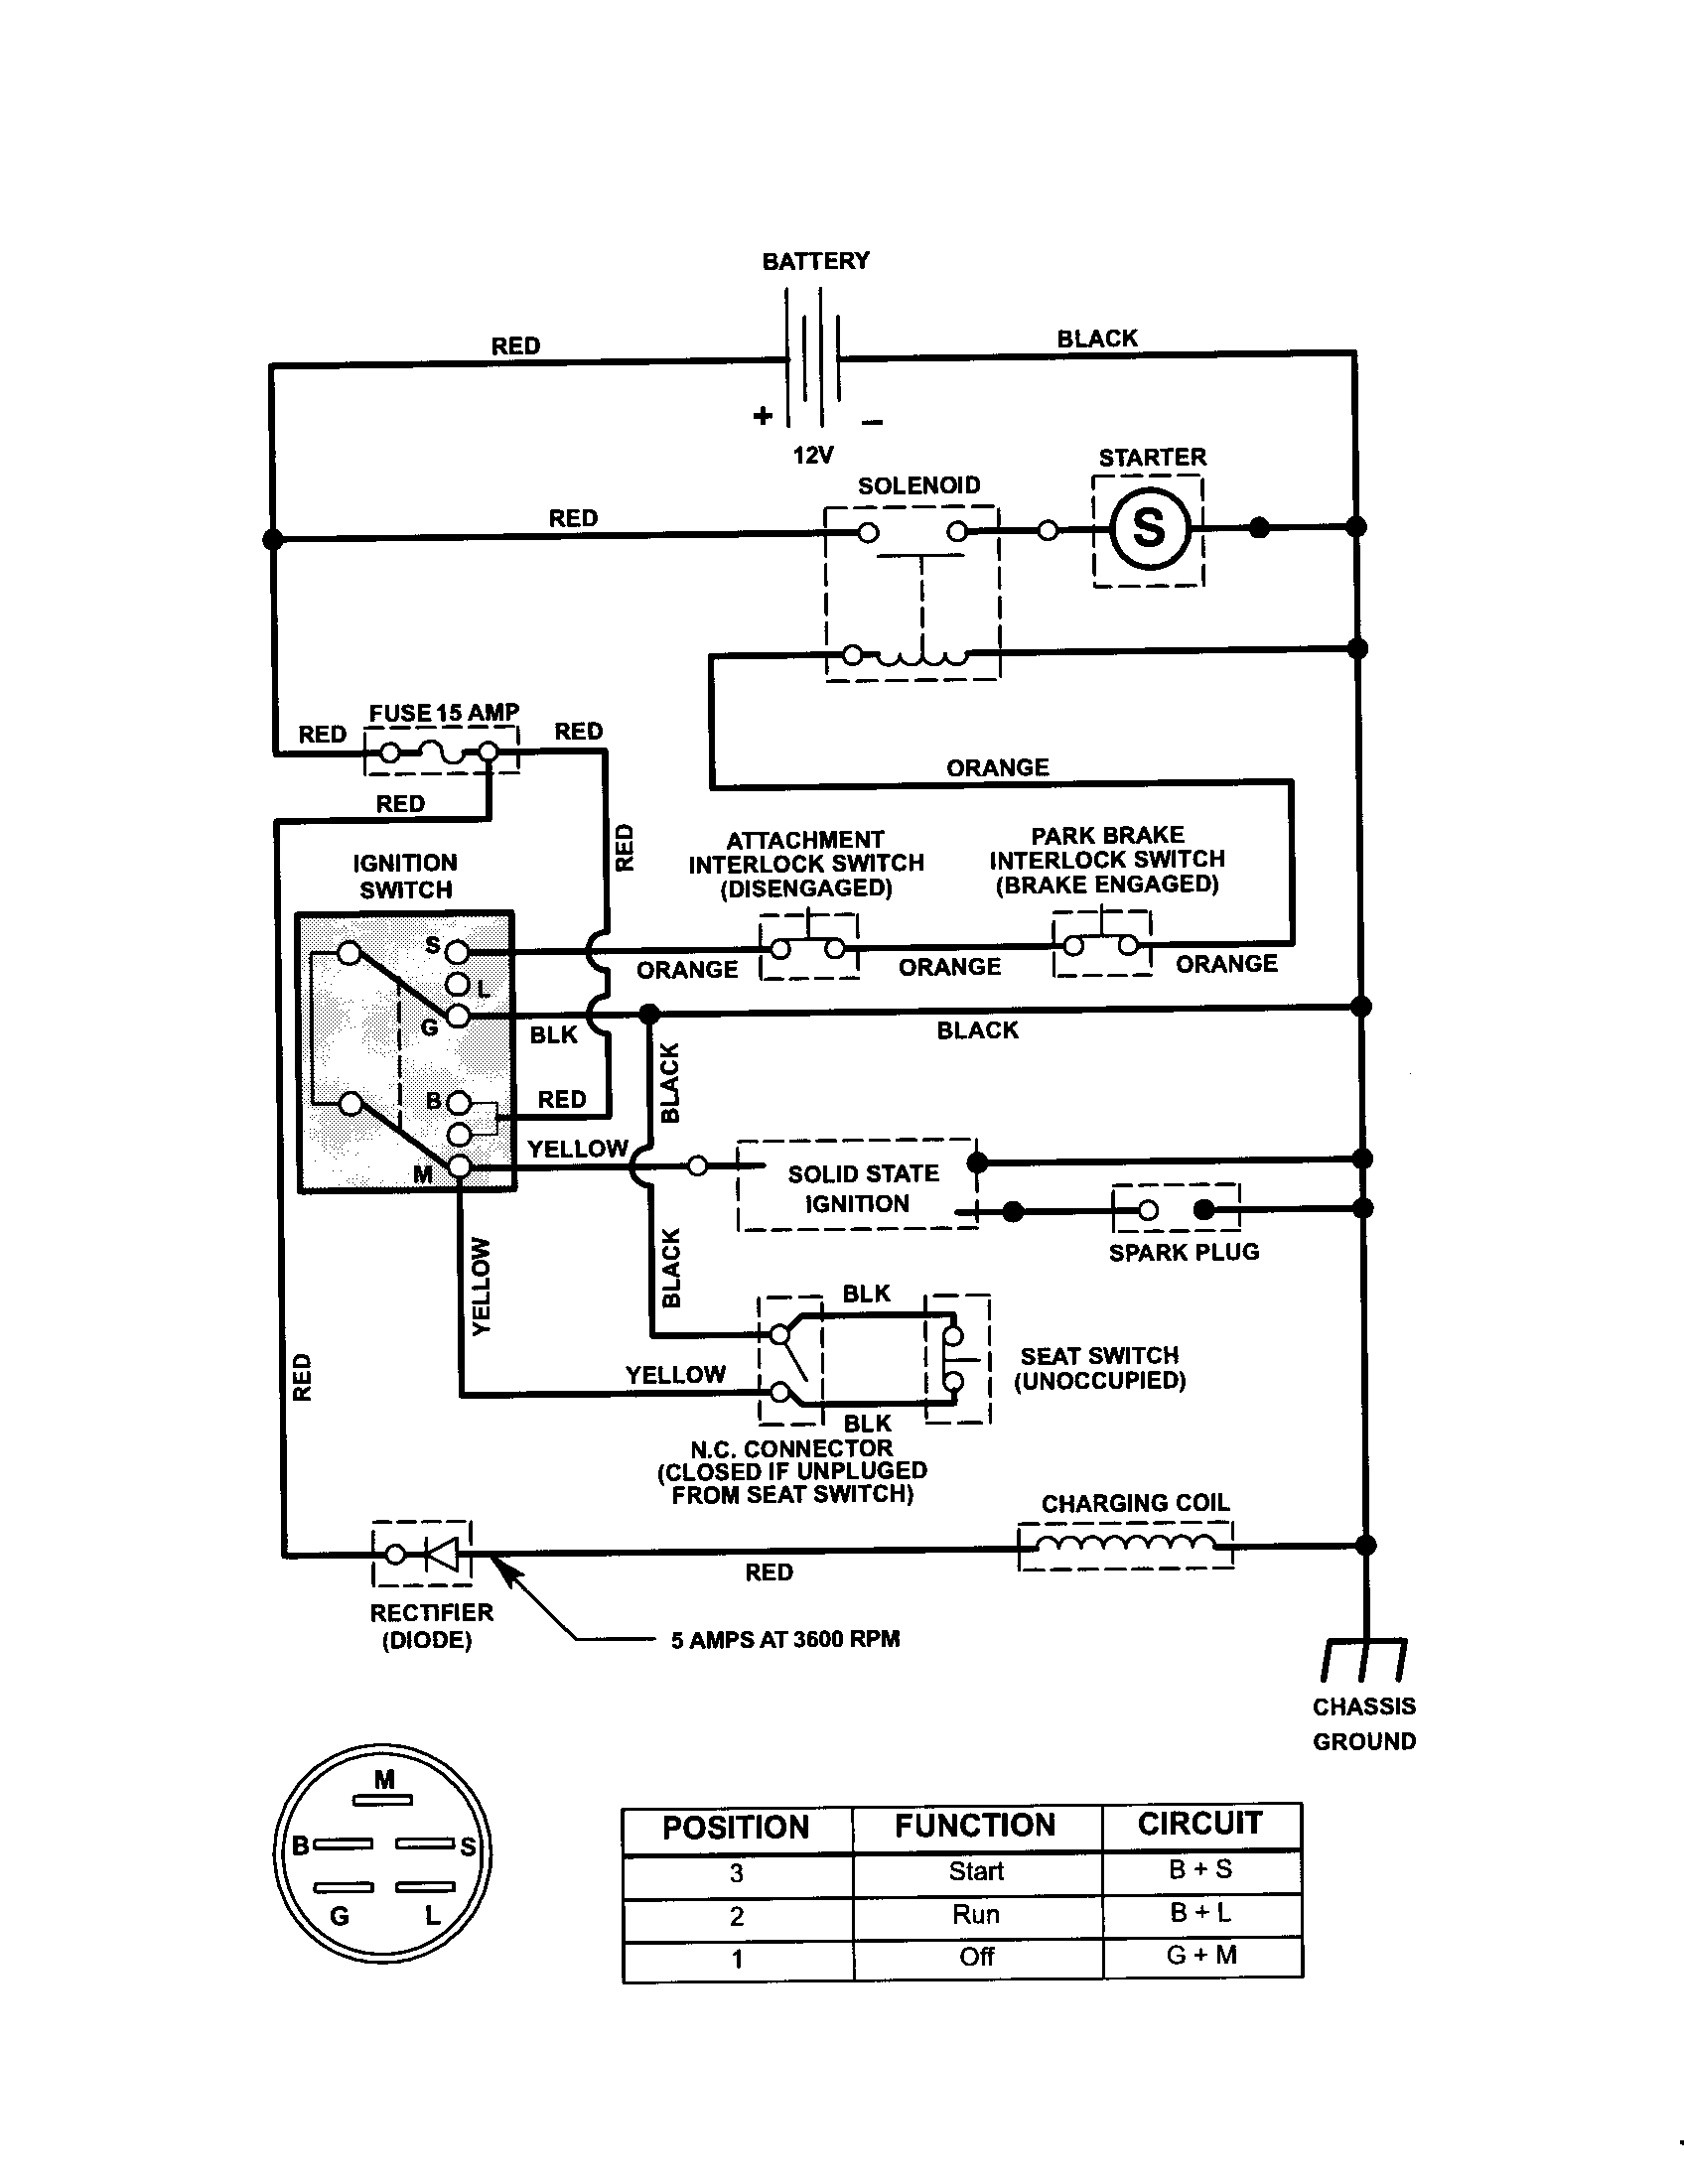 1b4fc64e2bcb7b381848942ff5c84dce craftsman riding mower electrical diagram pictures of craftsman wiring diagram for a craftsman riding lawn mower at bayanpartner.co